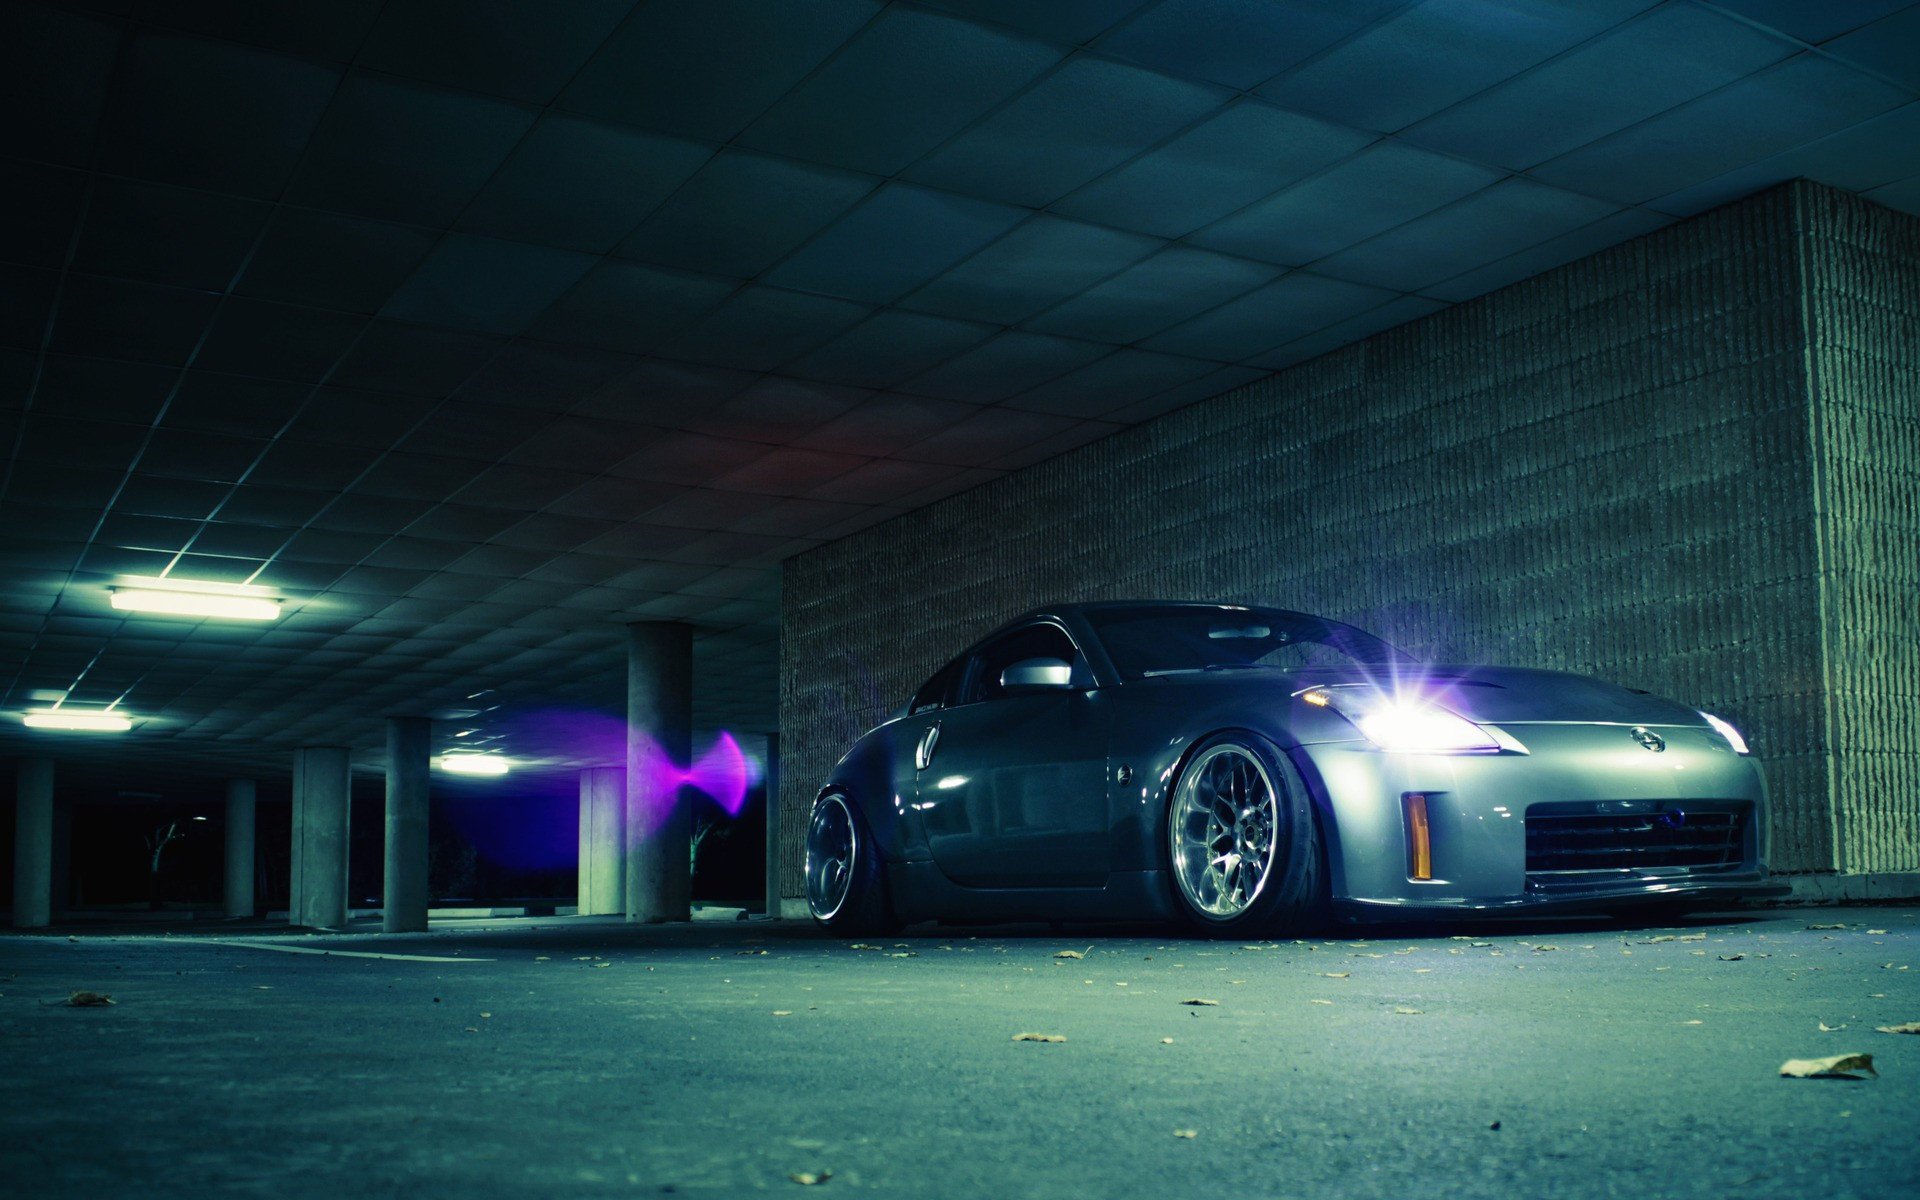 Muscle Car Wallpaper Pack Ownload Nissan 350z Wallpapers High Quality Download Free